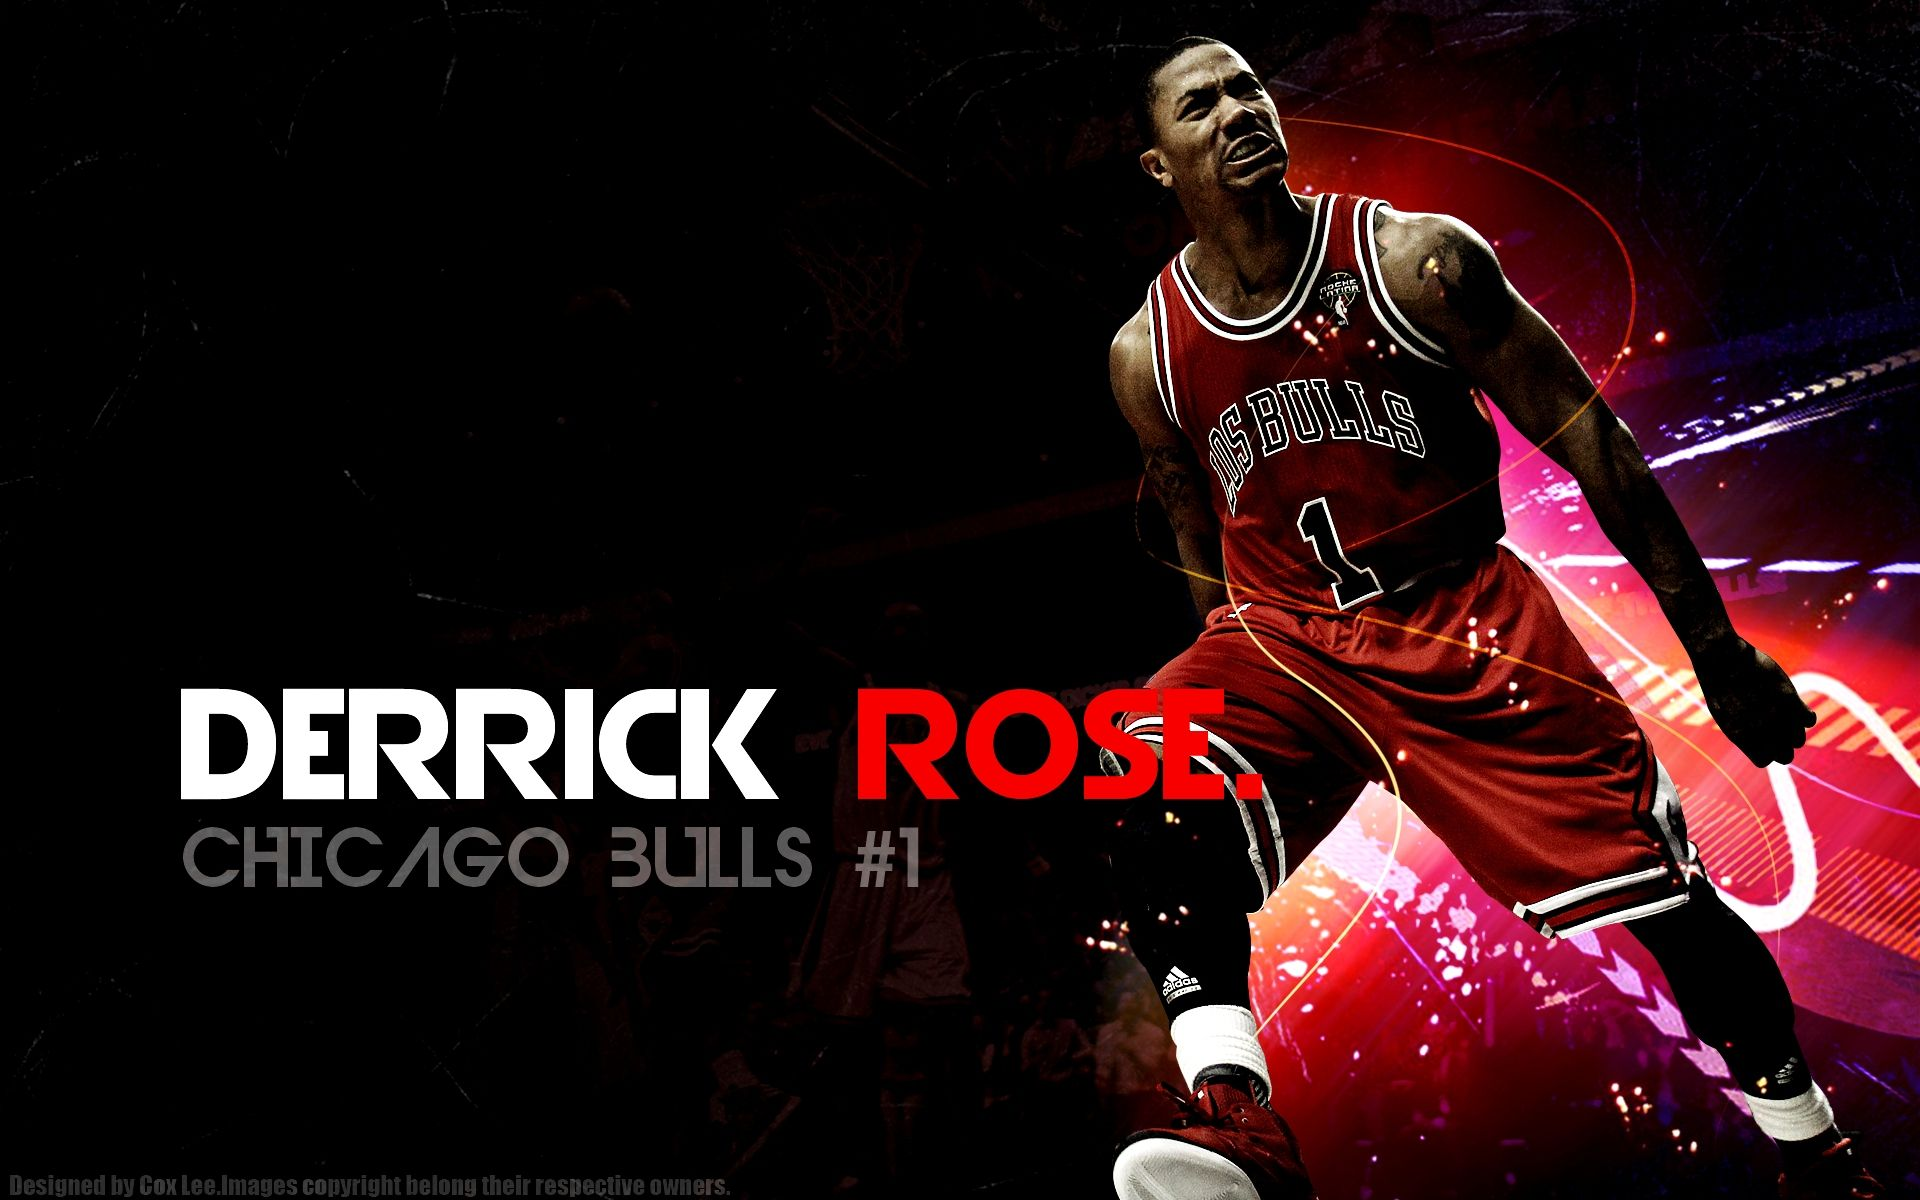 Derrick Rose 2015 Basketball Players Derrick Rose Chicago Bulls 1920x1200